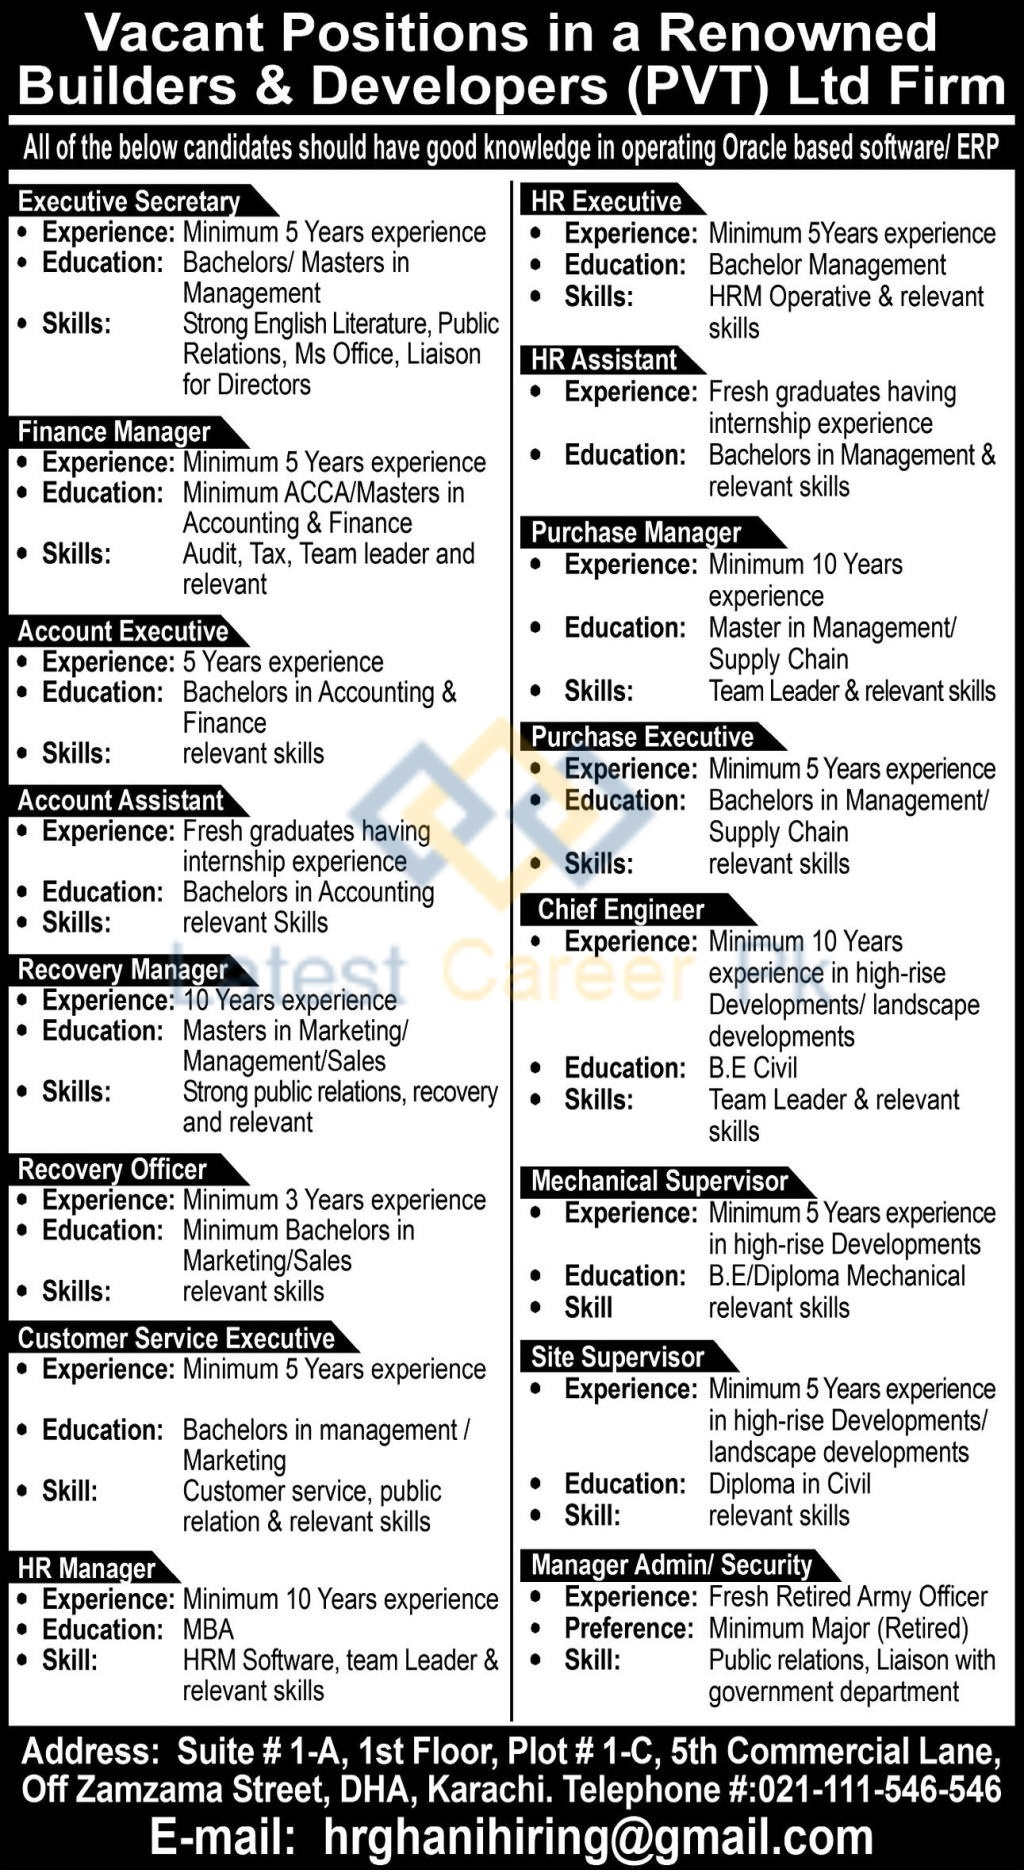 Ghani-Builders-and-Developers-Pvt-Limited-Karachi-Jobs-20-July-2020